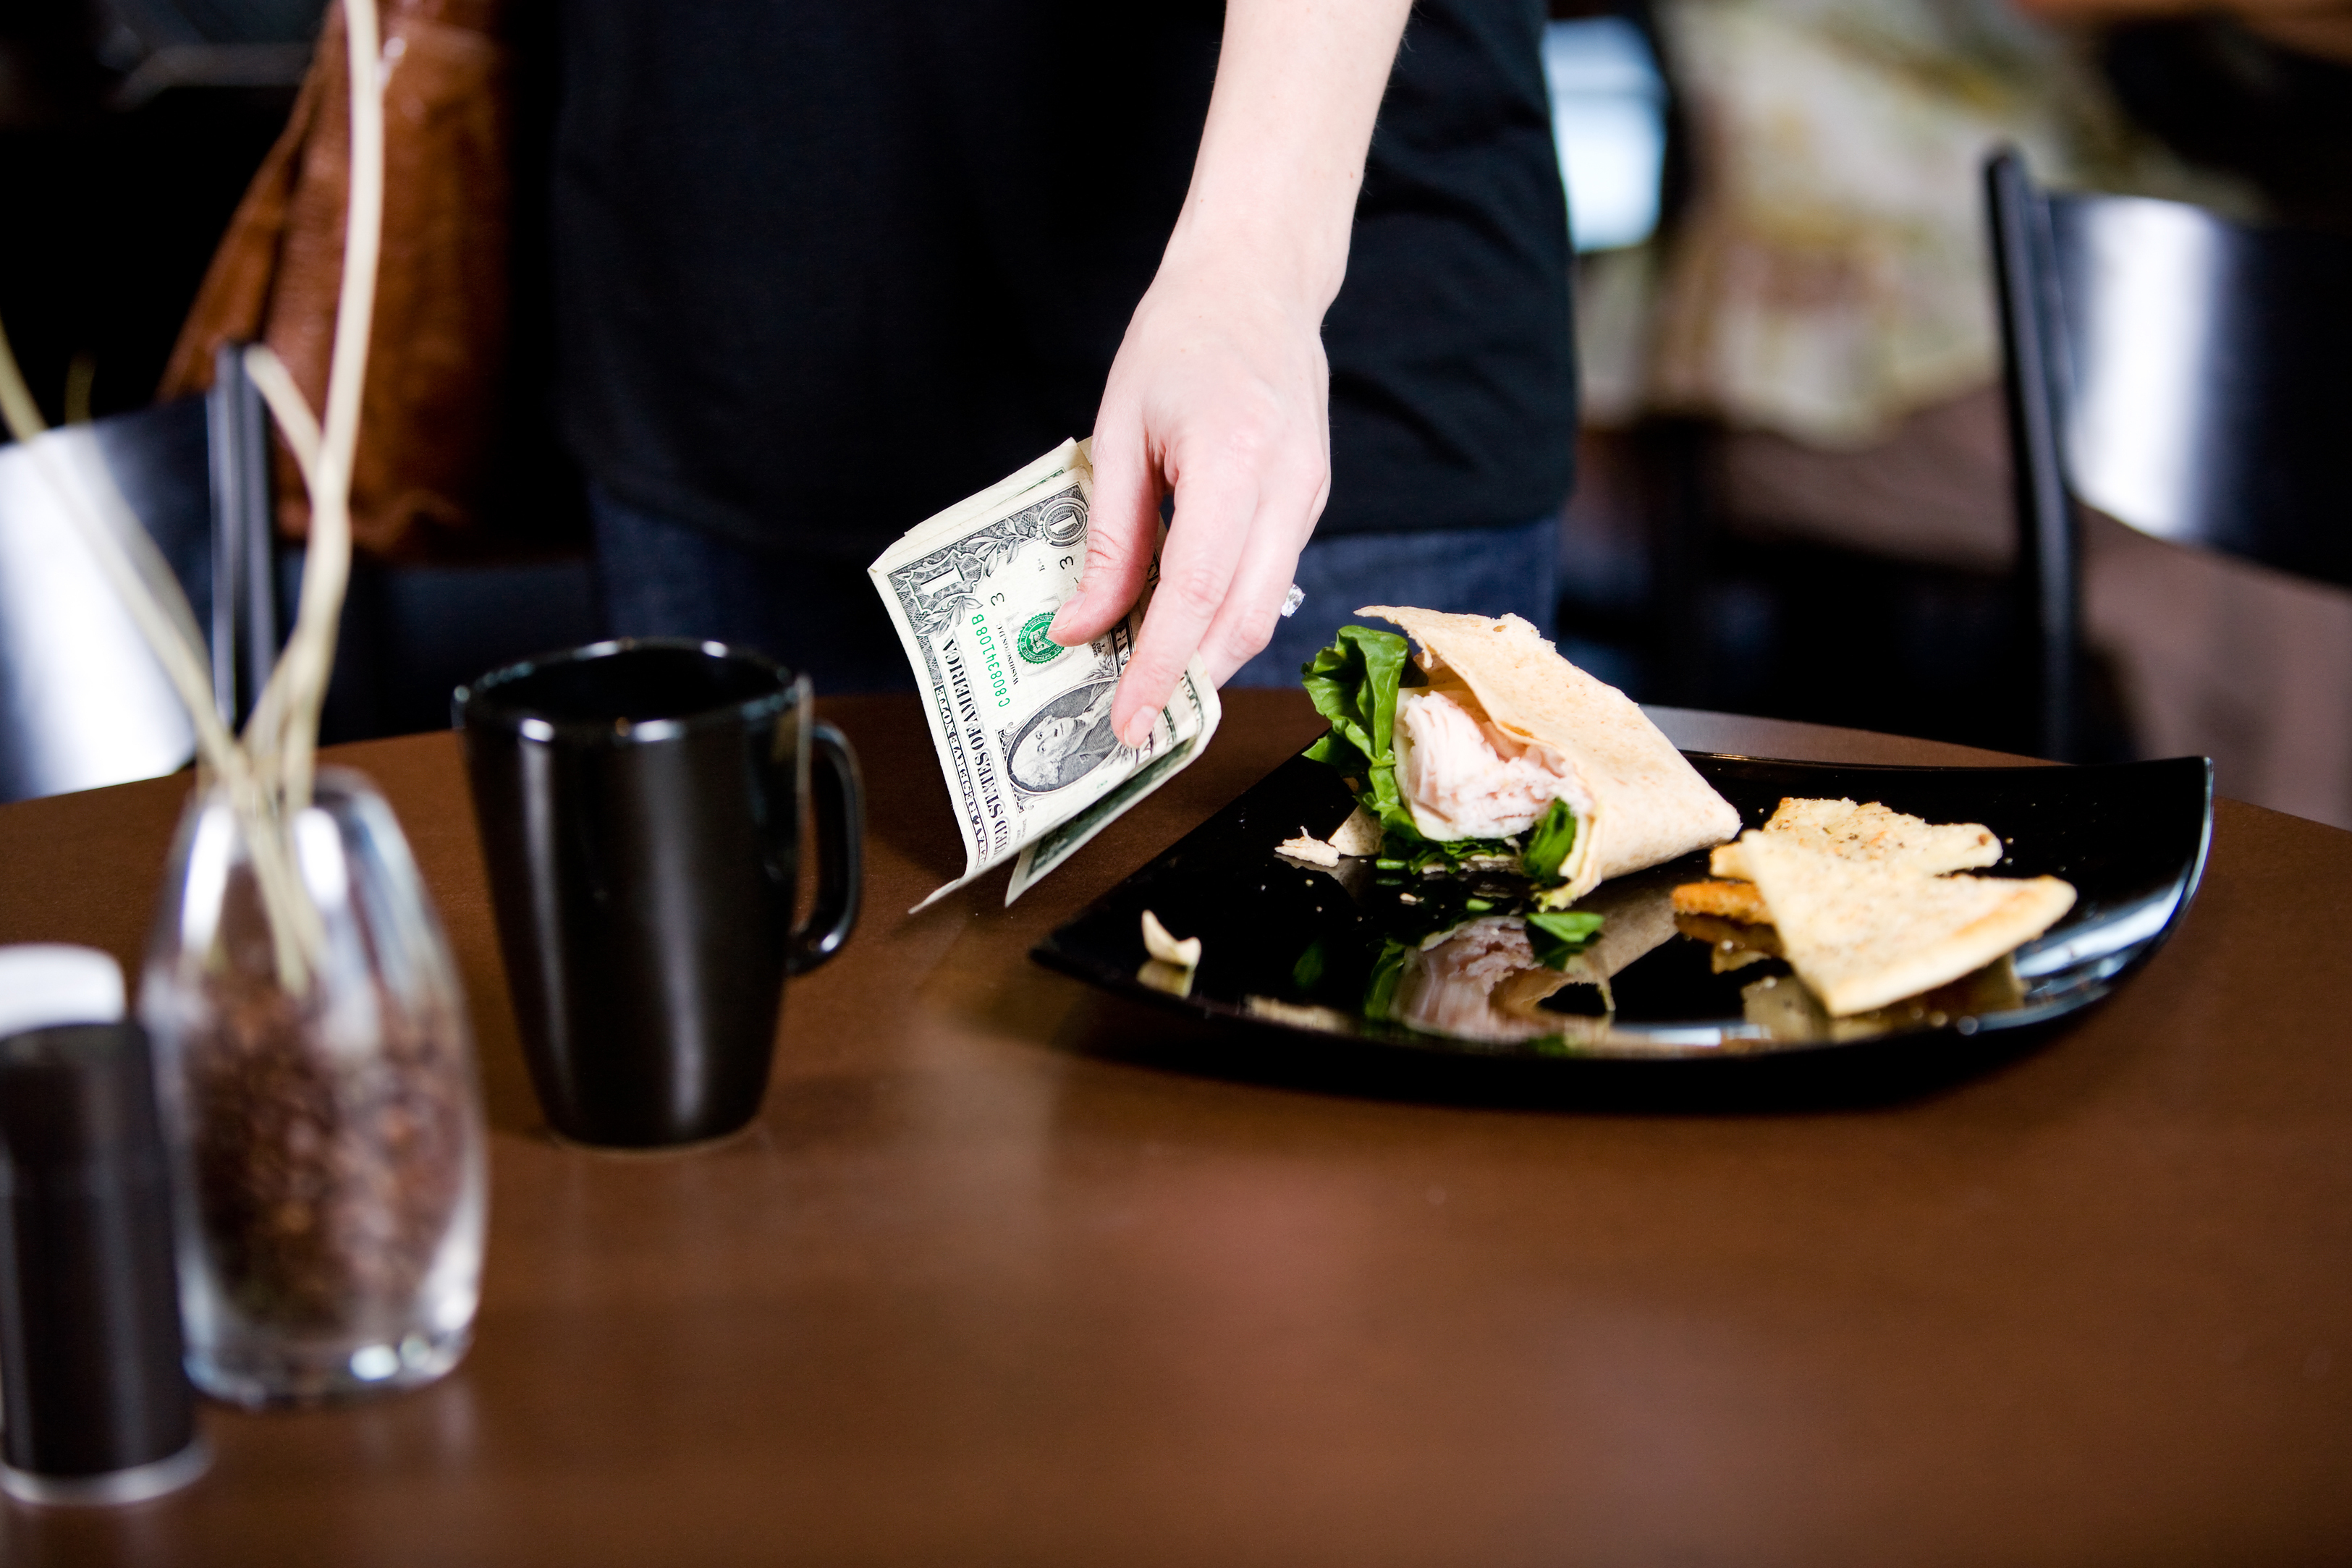 Lawmakers Approve Major Changes to Michigan's New Minimum Wage, Paid Sick Leave Laws